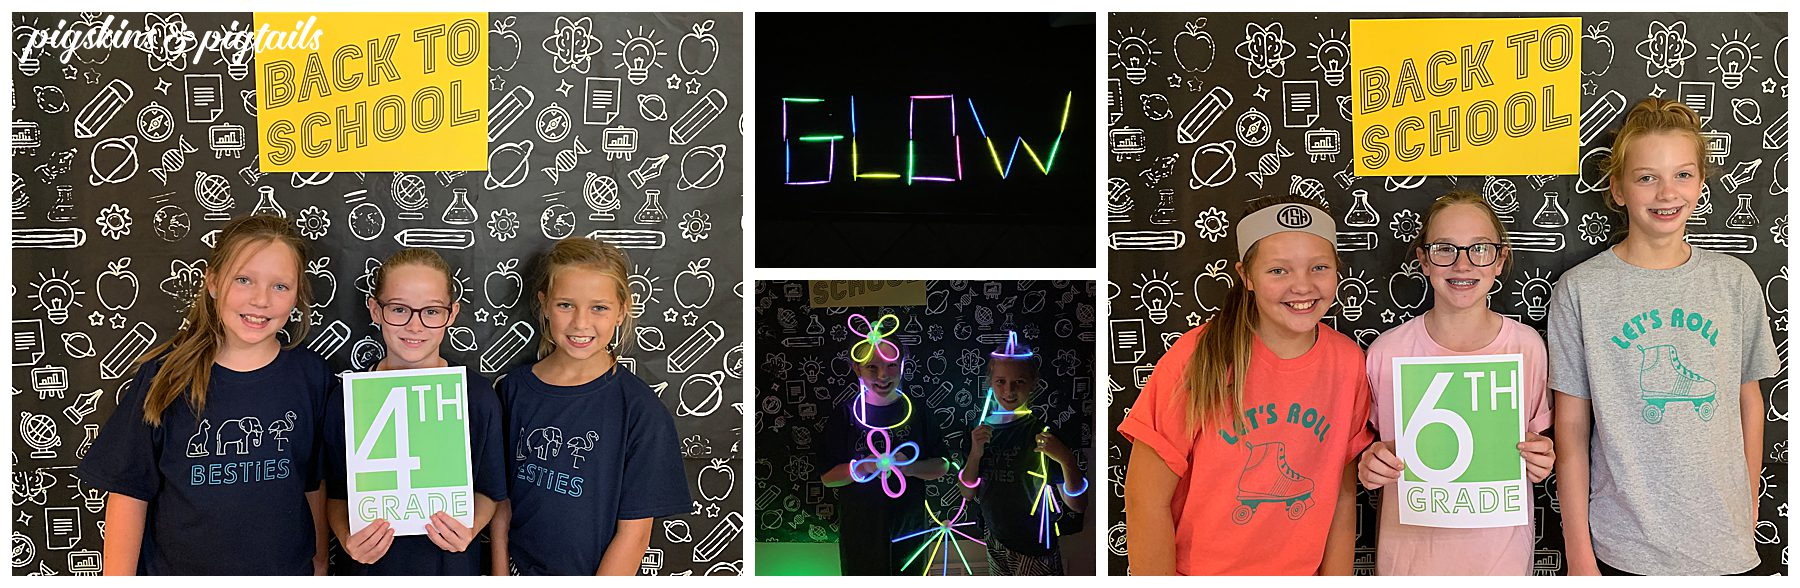 Back to school glow party celebrate summer